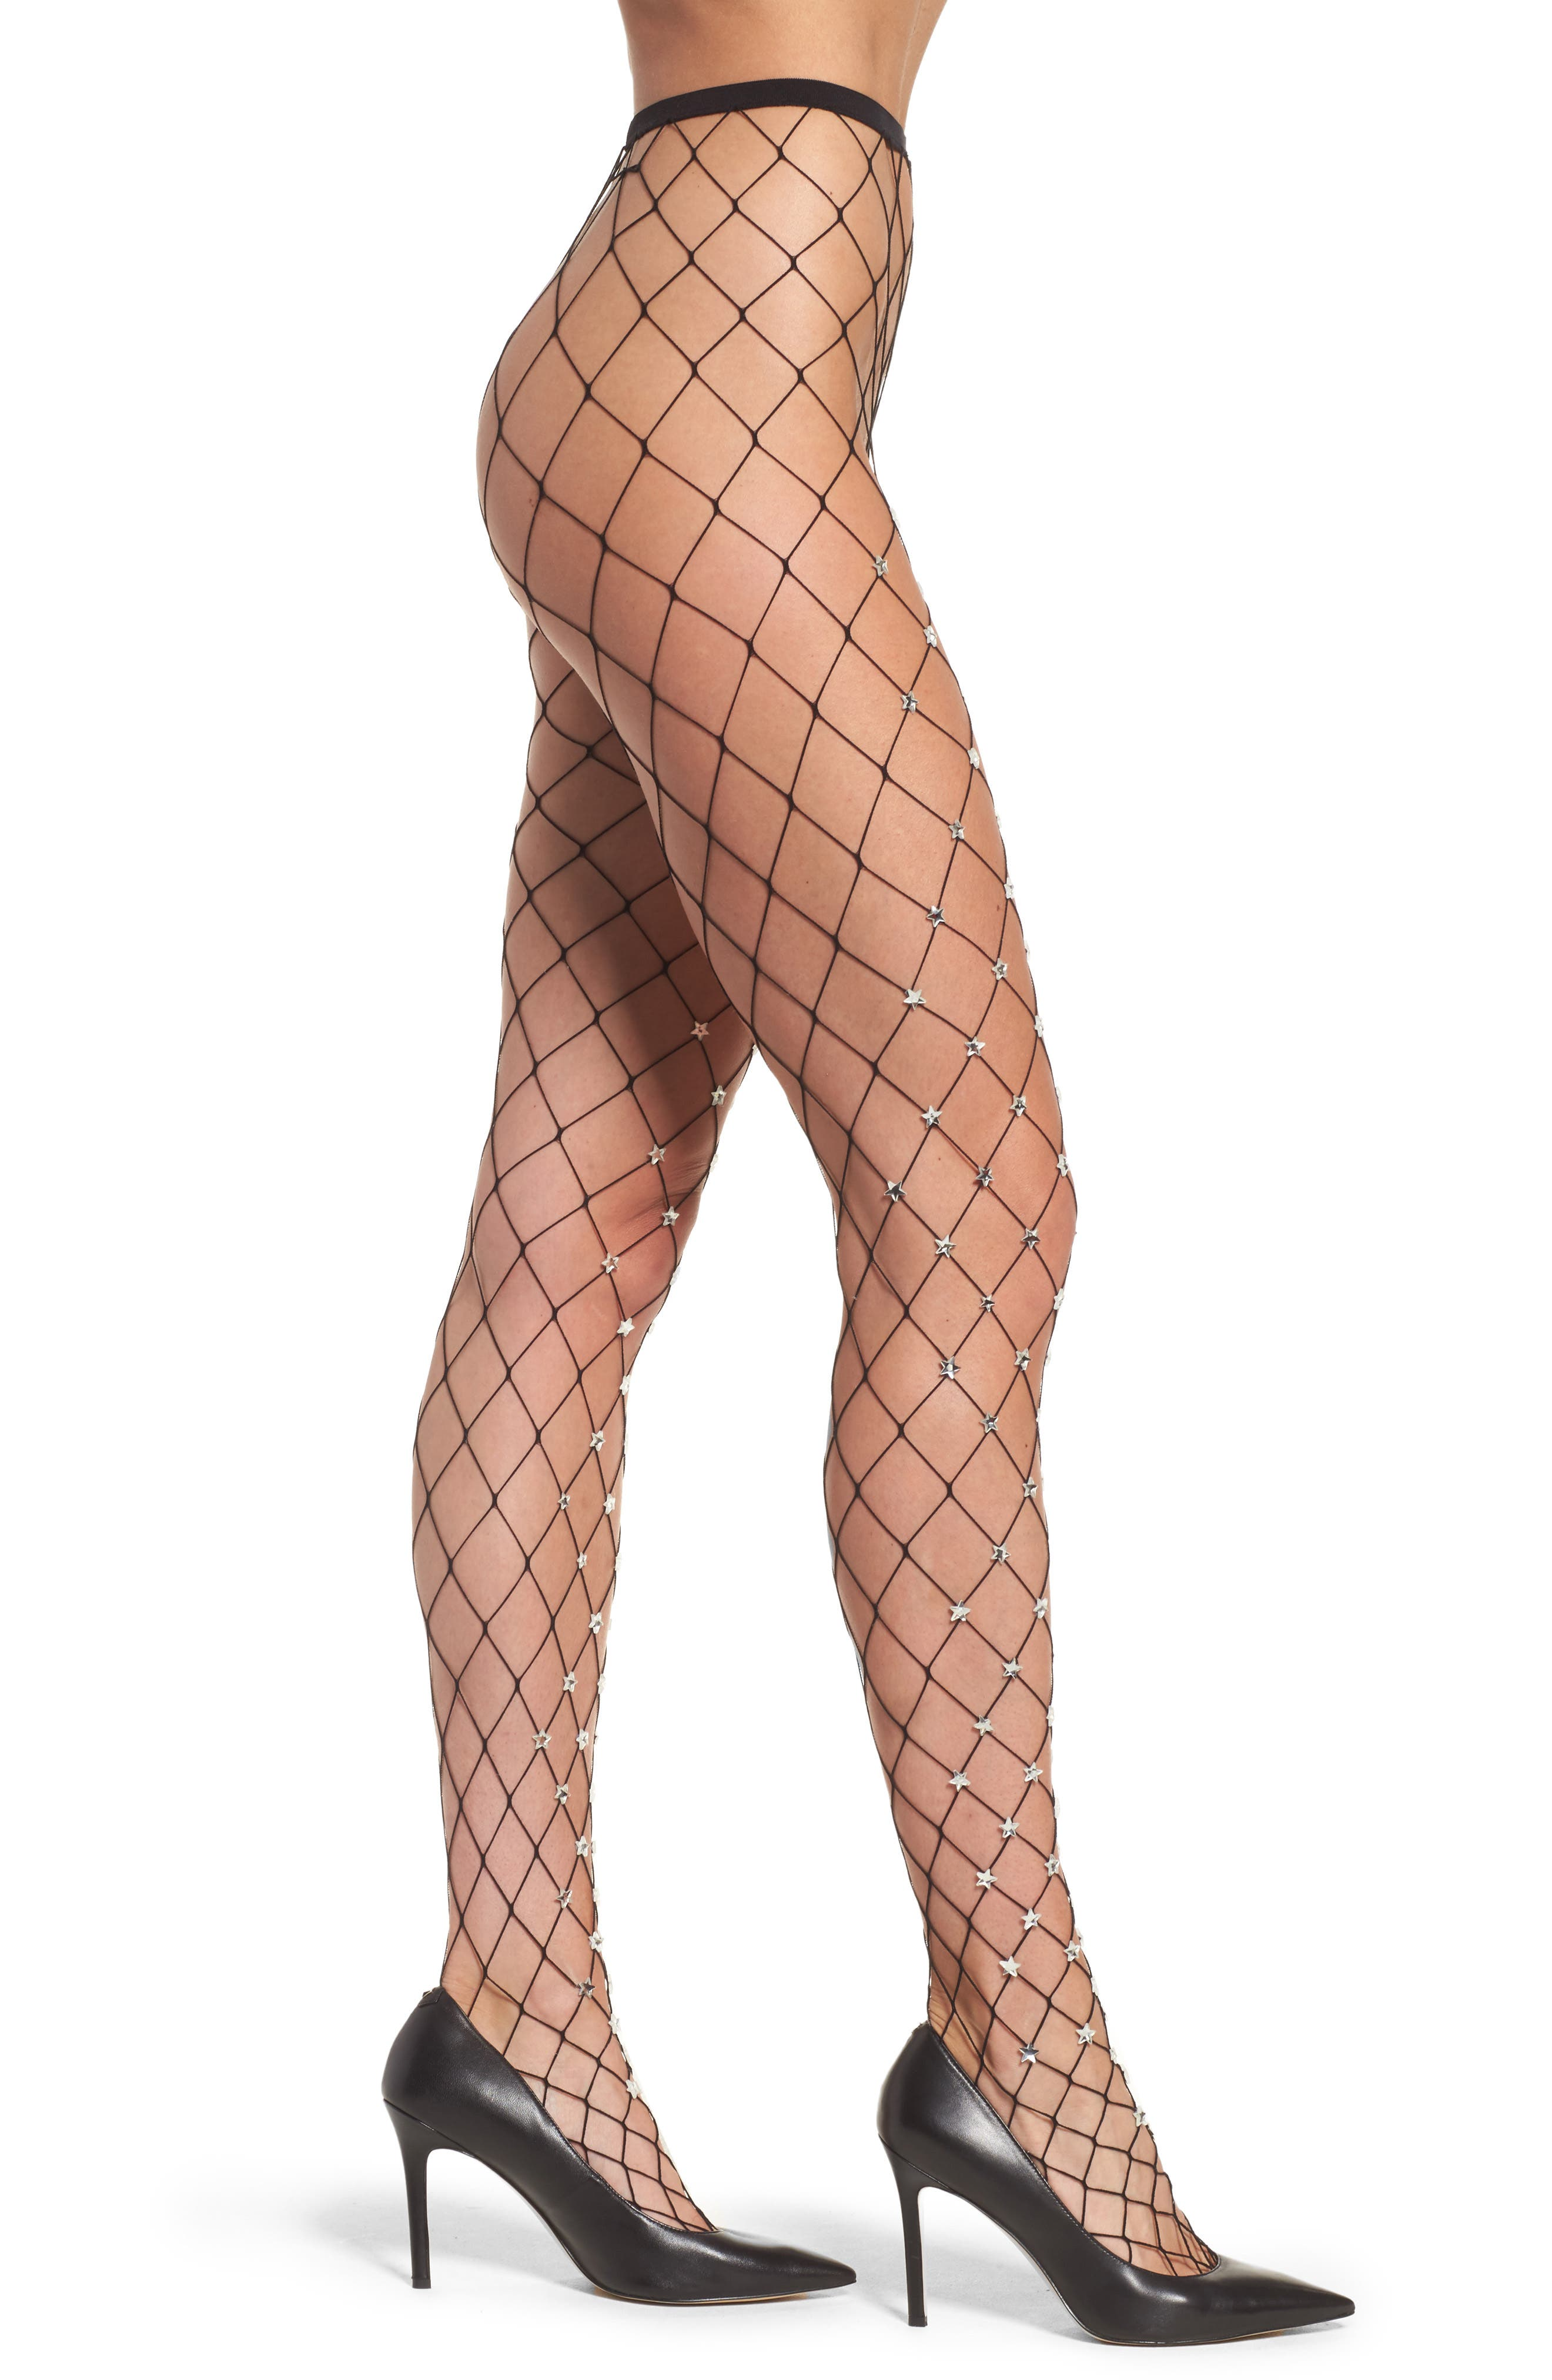 Silver Starry Fishnet Tights,                         Main,                         color, Black